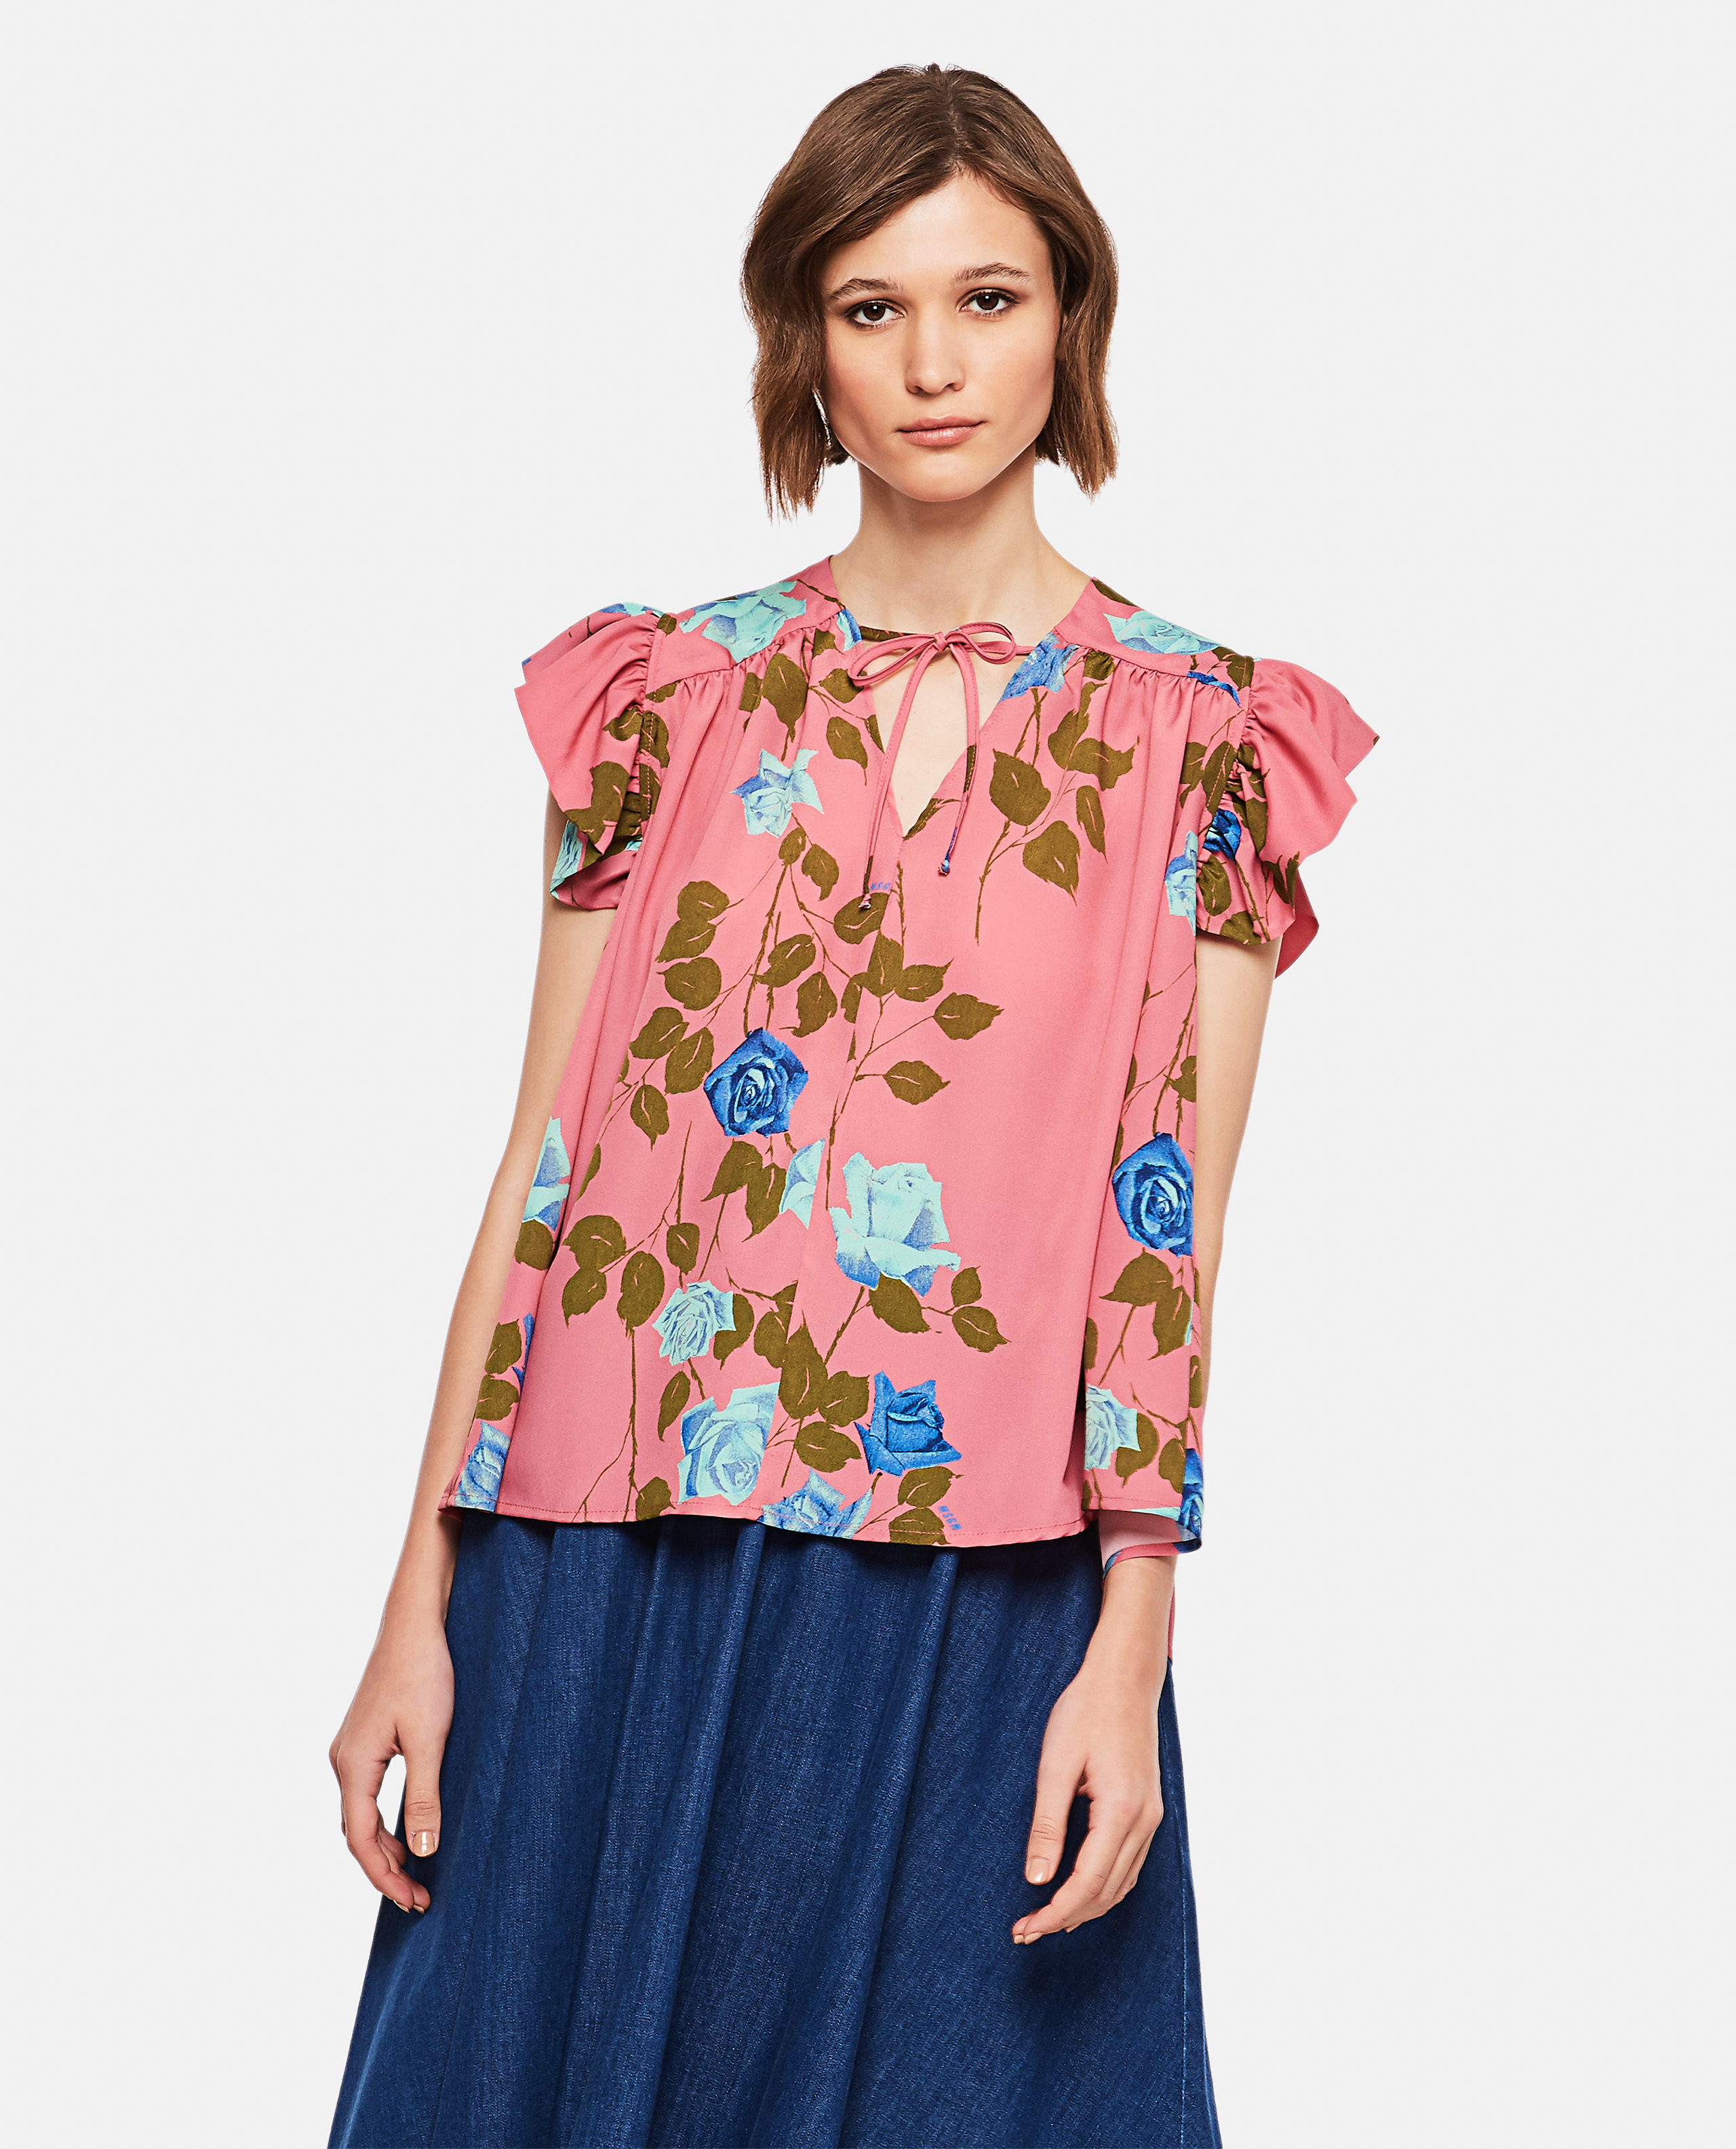 Blouse with pink print